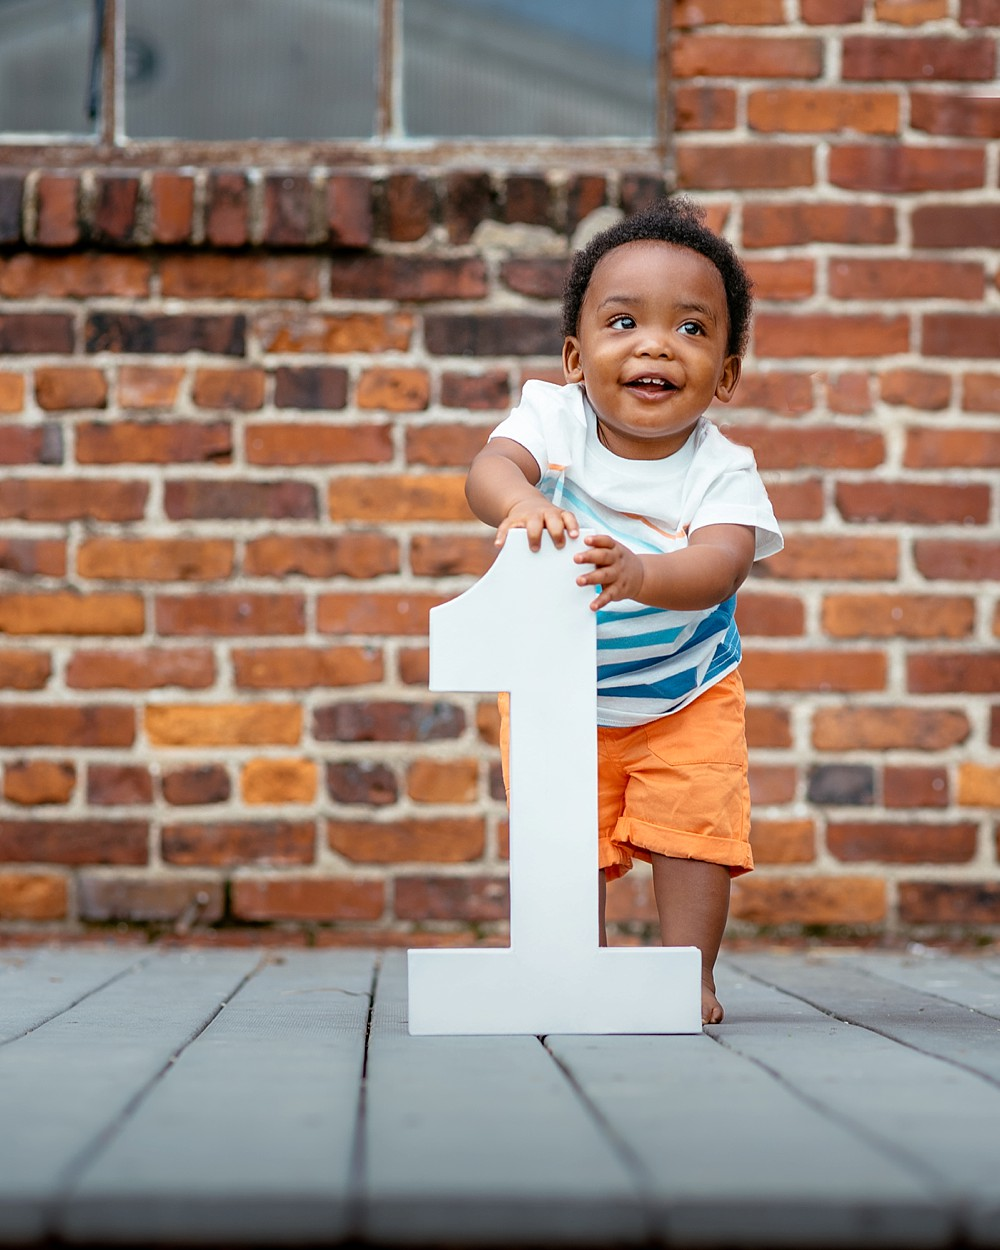 toddle standing holding onto his white one year old wooden sign. Brick in the background.